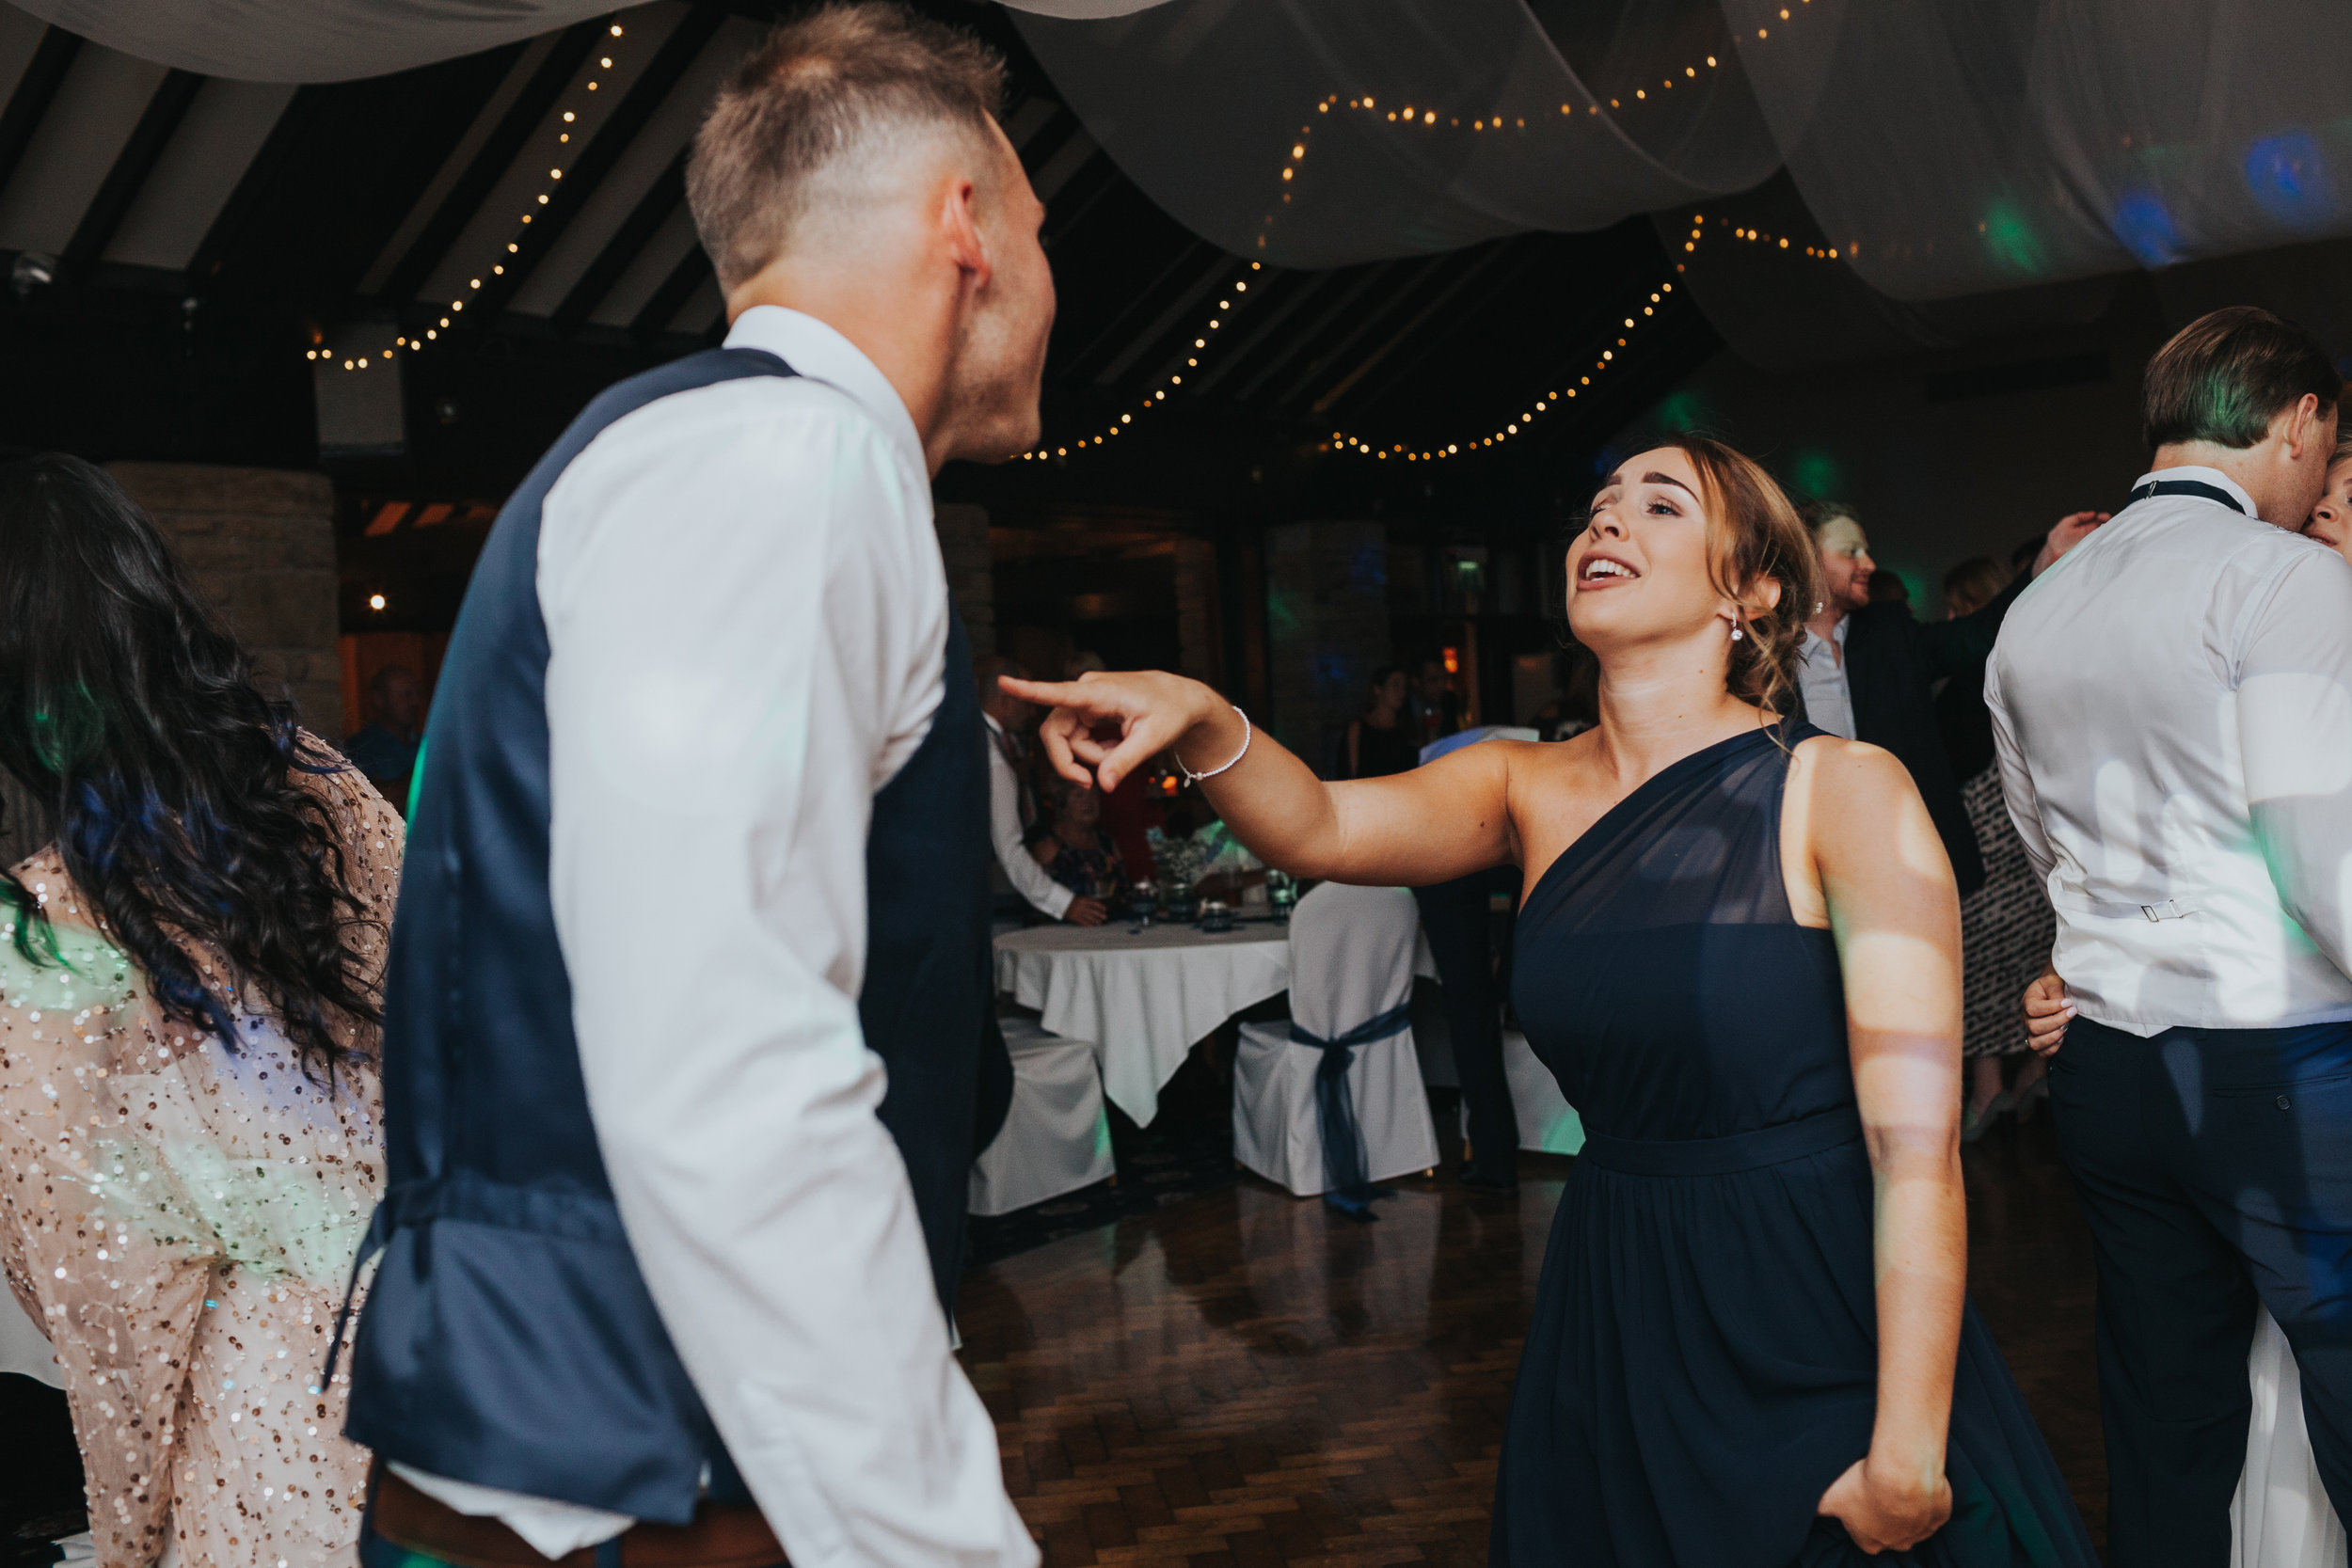 Bridesmaid dances with partner.